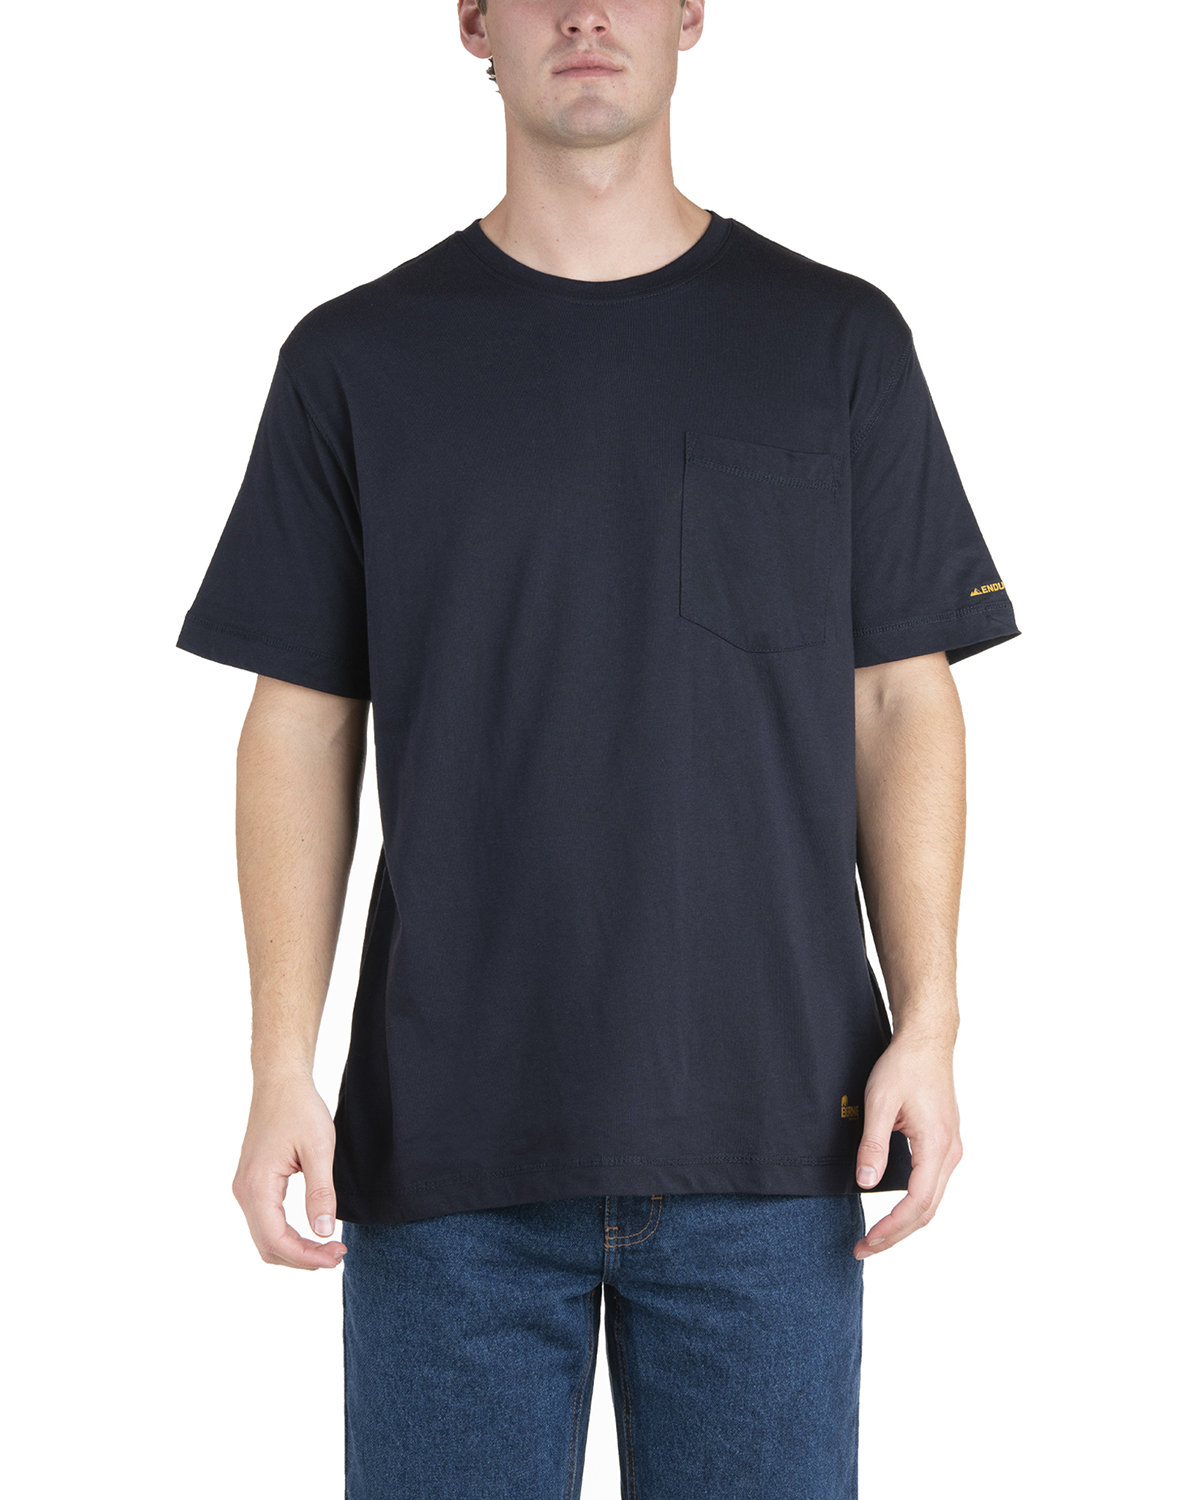 Berne Men's Lightweight Performance Pocket T-Shirt NAVY